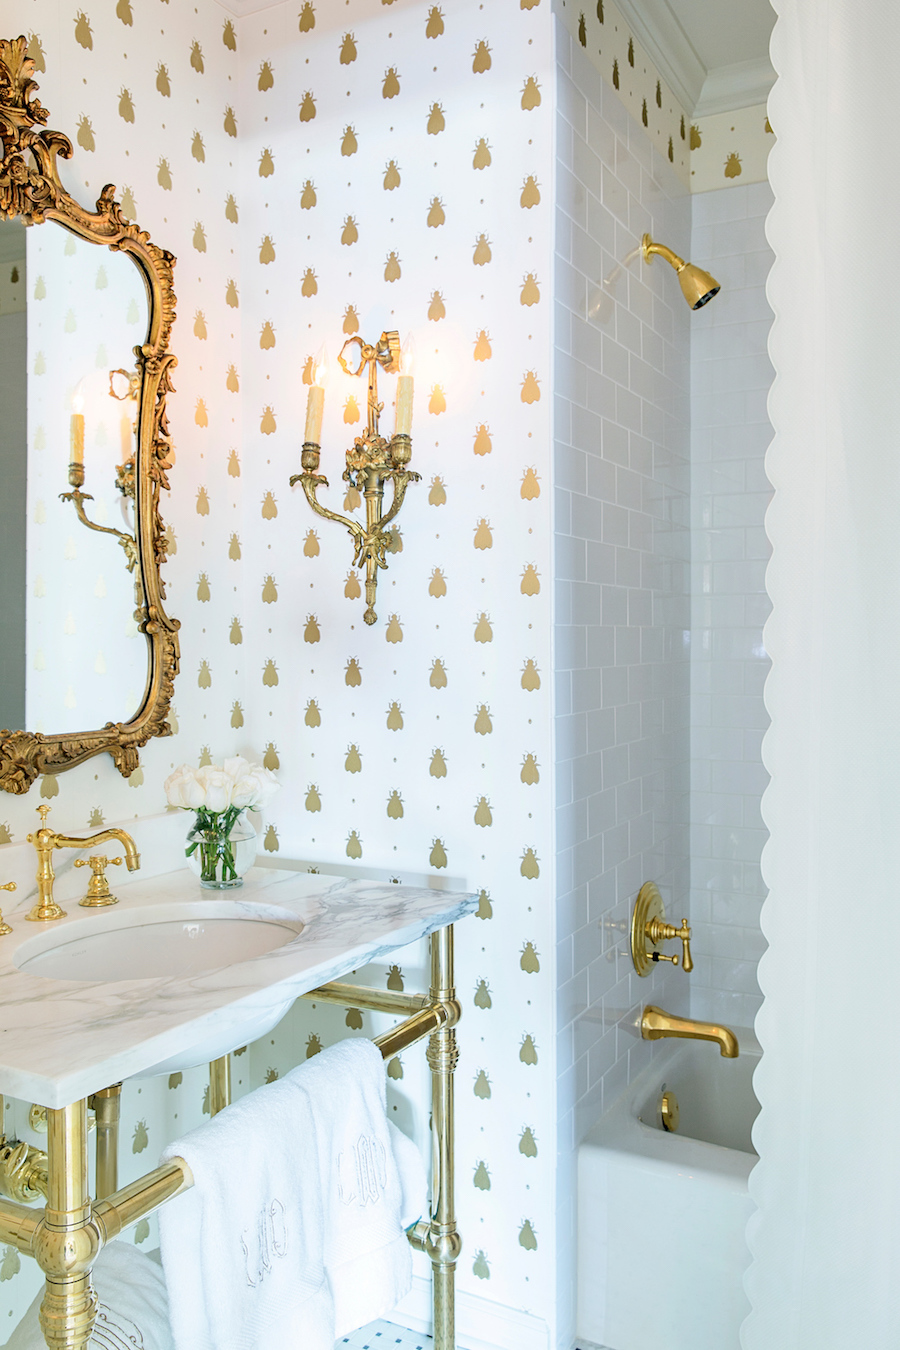 Cactus De Decoration 18 Gorgeous Marble Bathrooms With Brass & Gold Fixtures